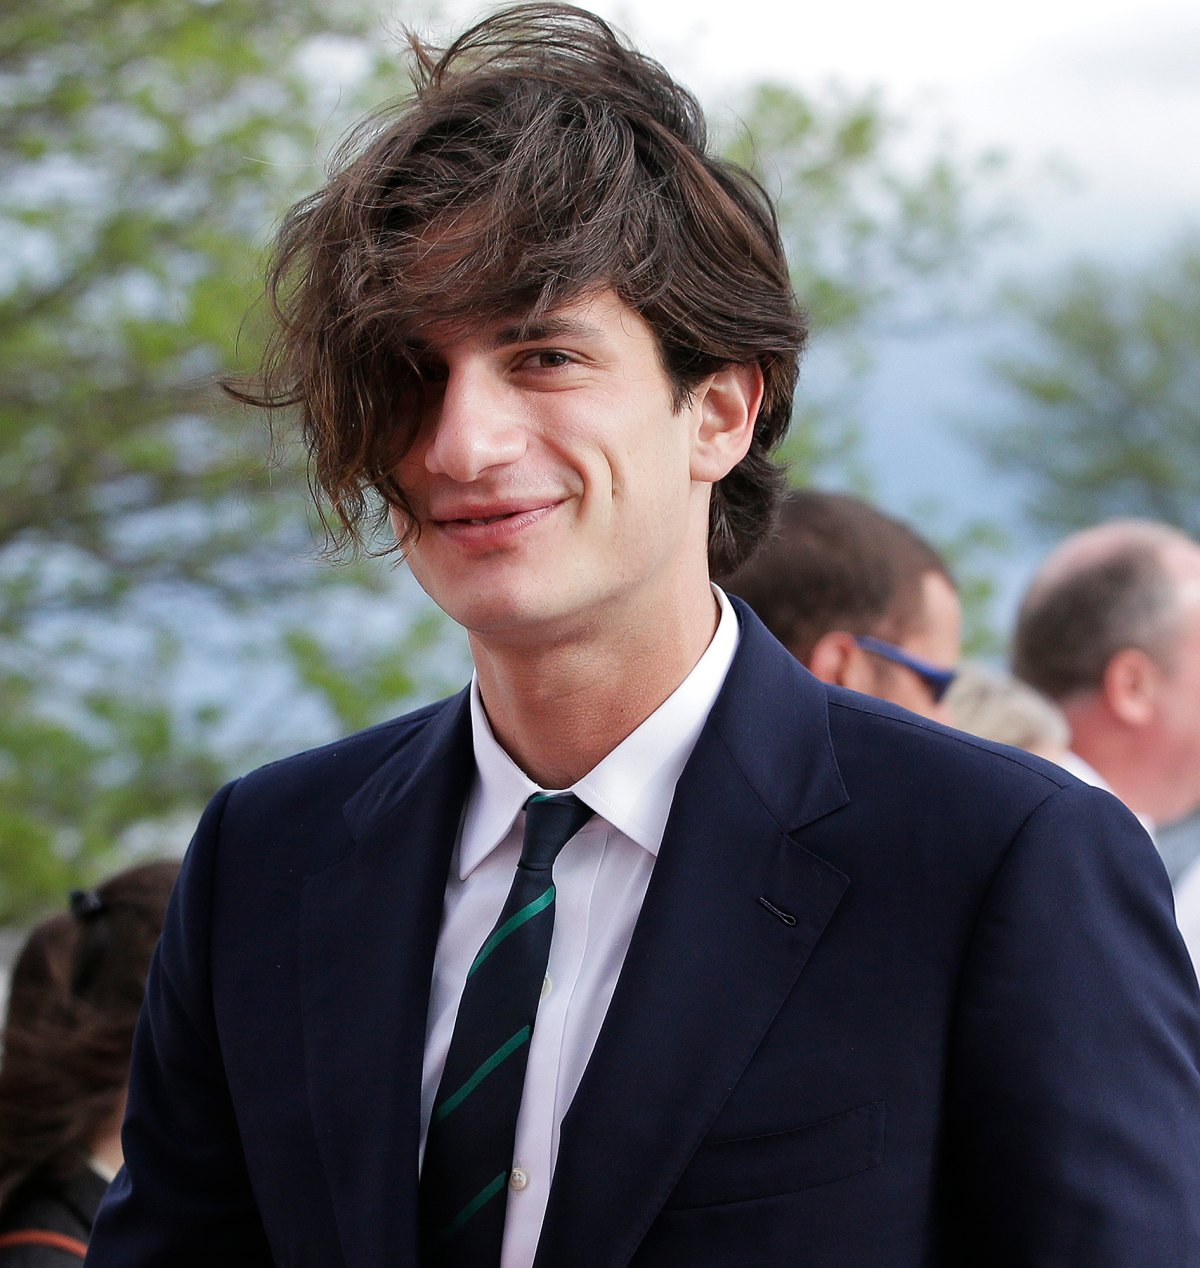 Jack Schlossberg 5 Things To Know About Jfk S Grandson,Abandoned Japanese Amusement Park